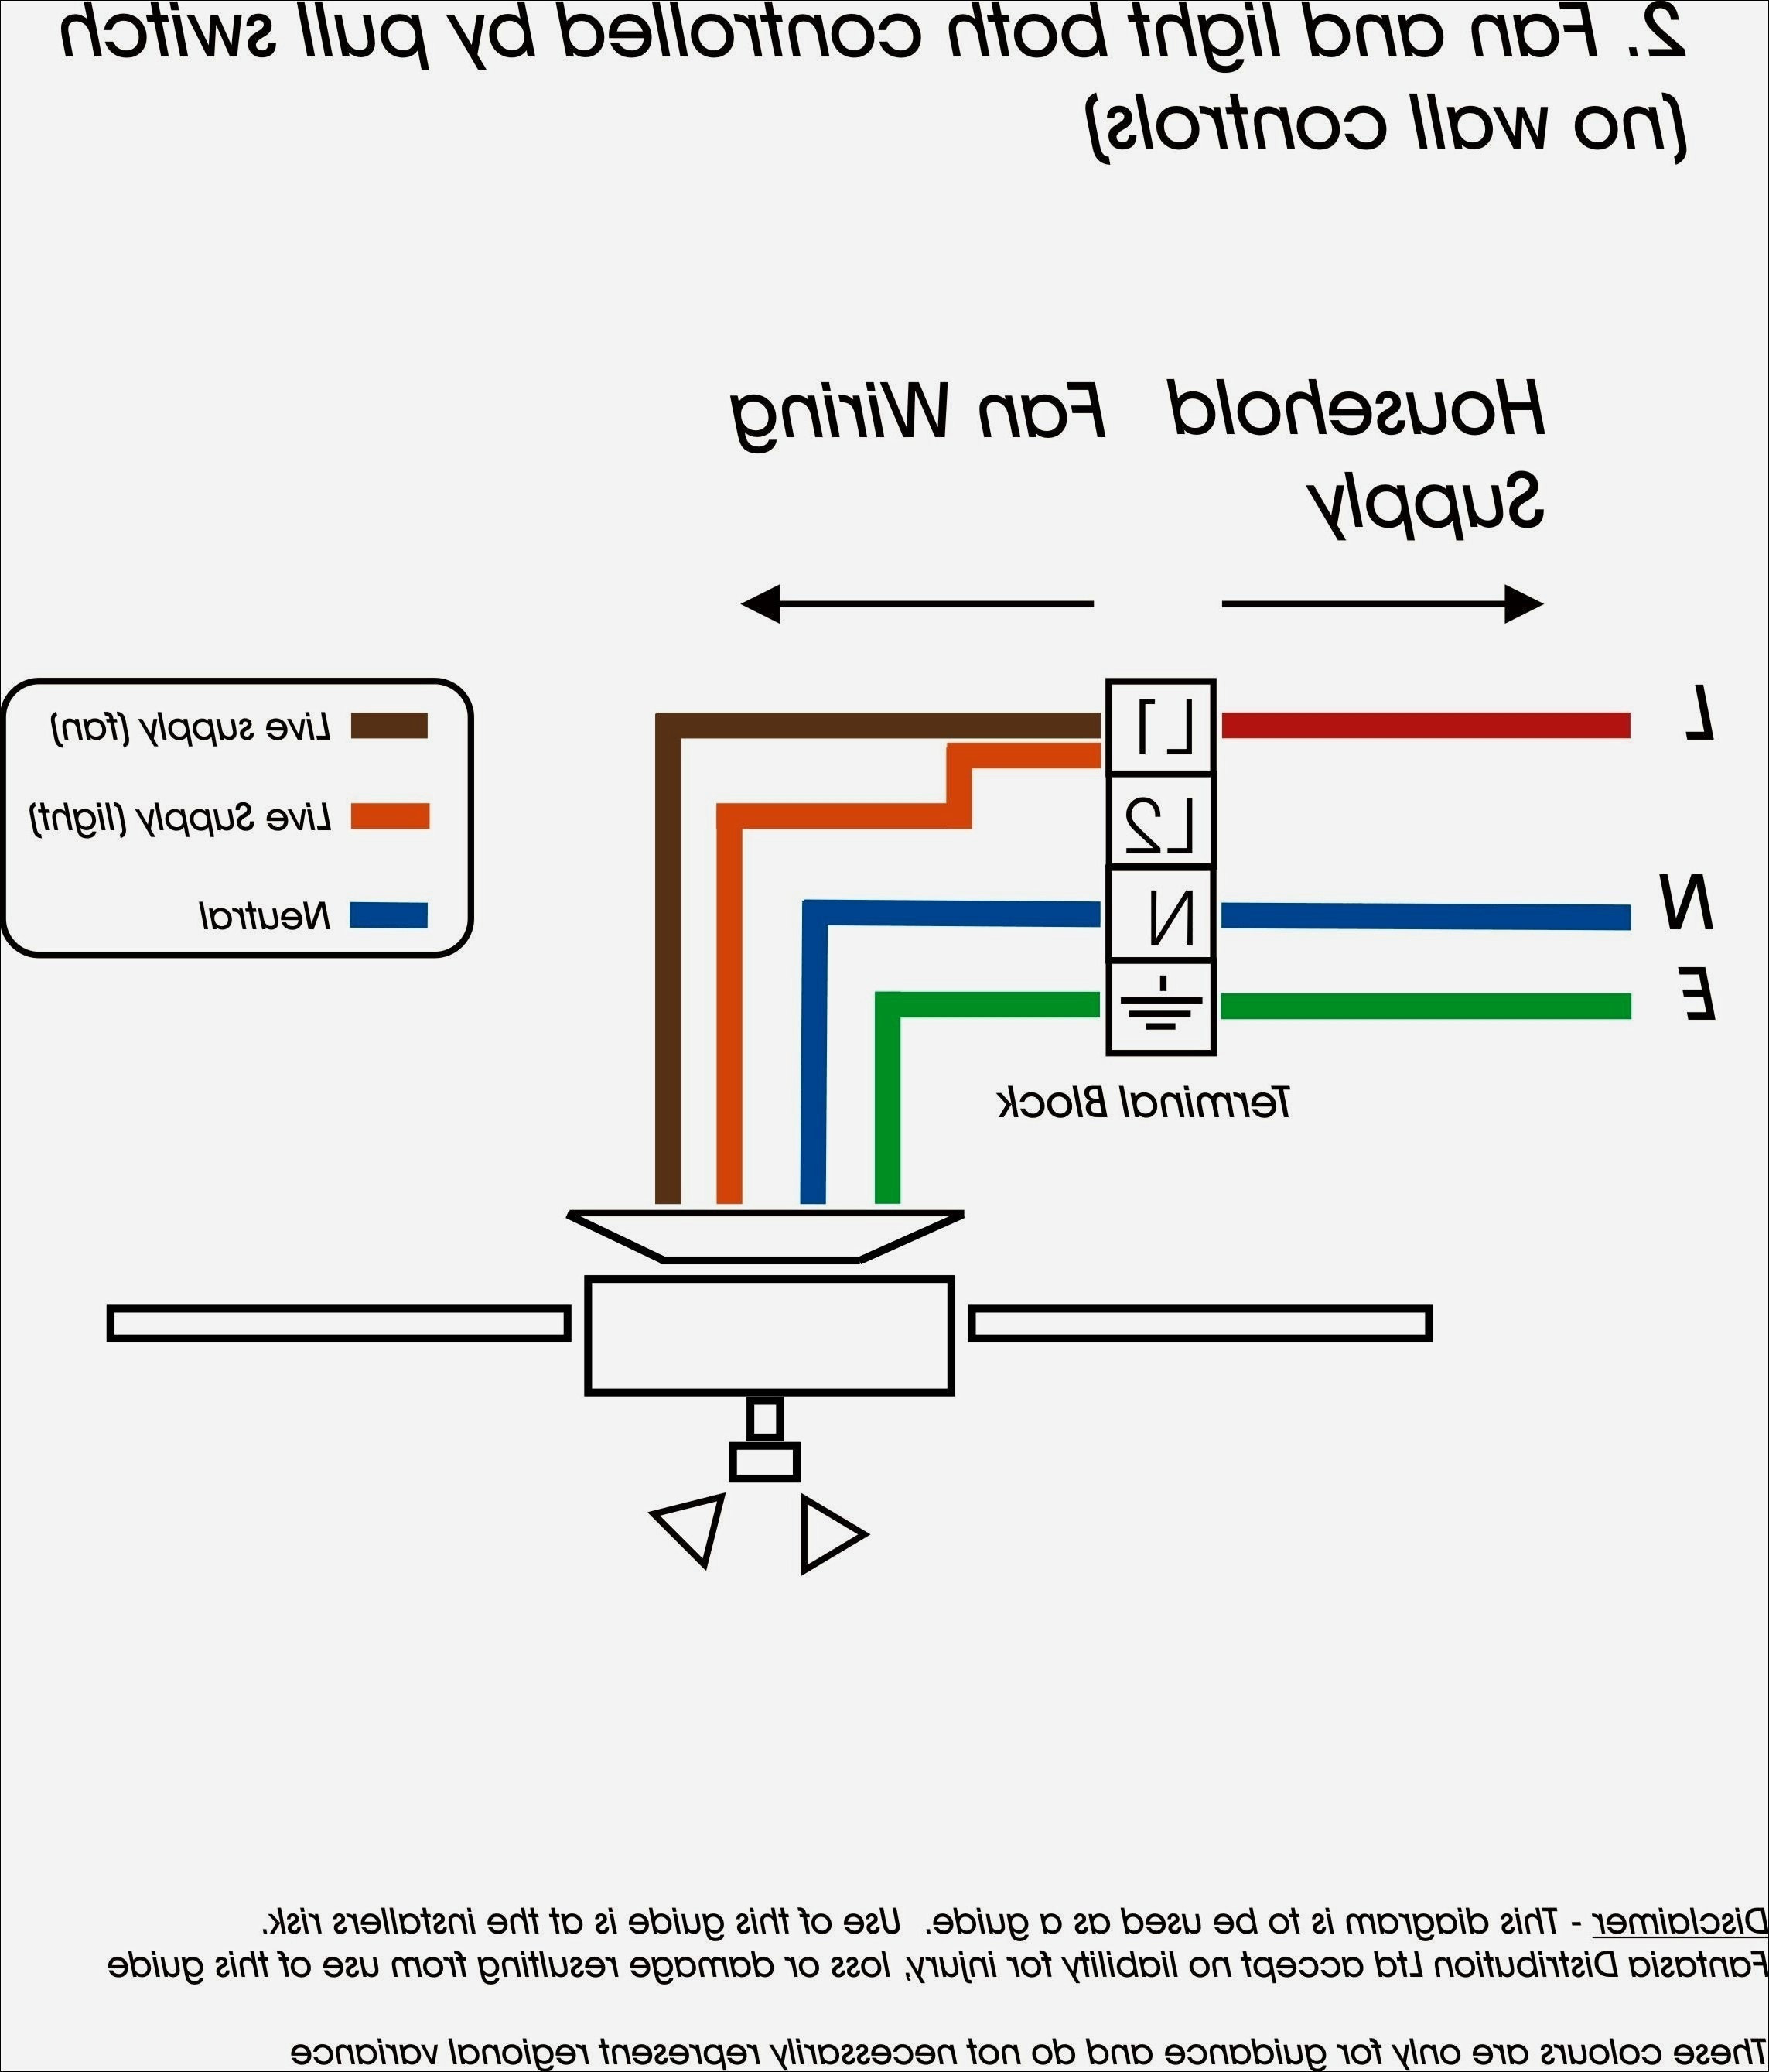 Lutron Maestro Cl Wiring Diagram Rate Lutron Diva 3 Way Dimmer - Lutron Dimmer Wiring Diagram